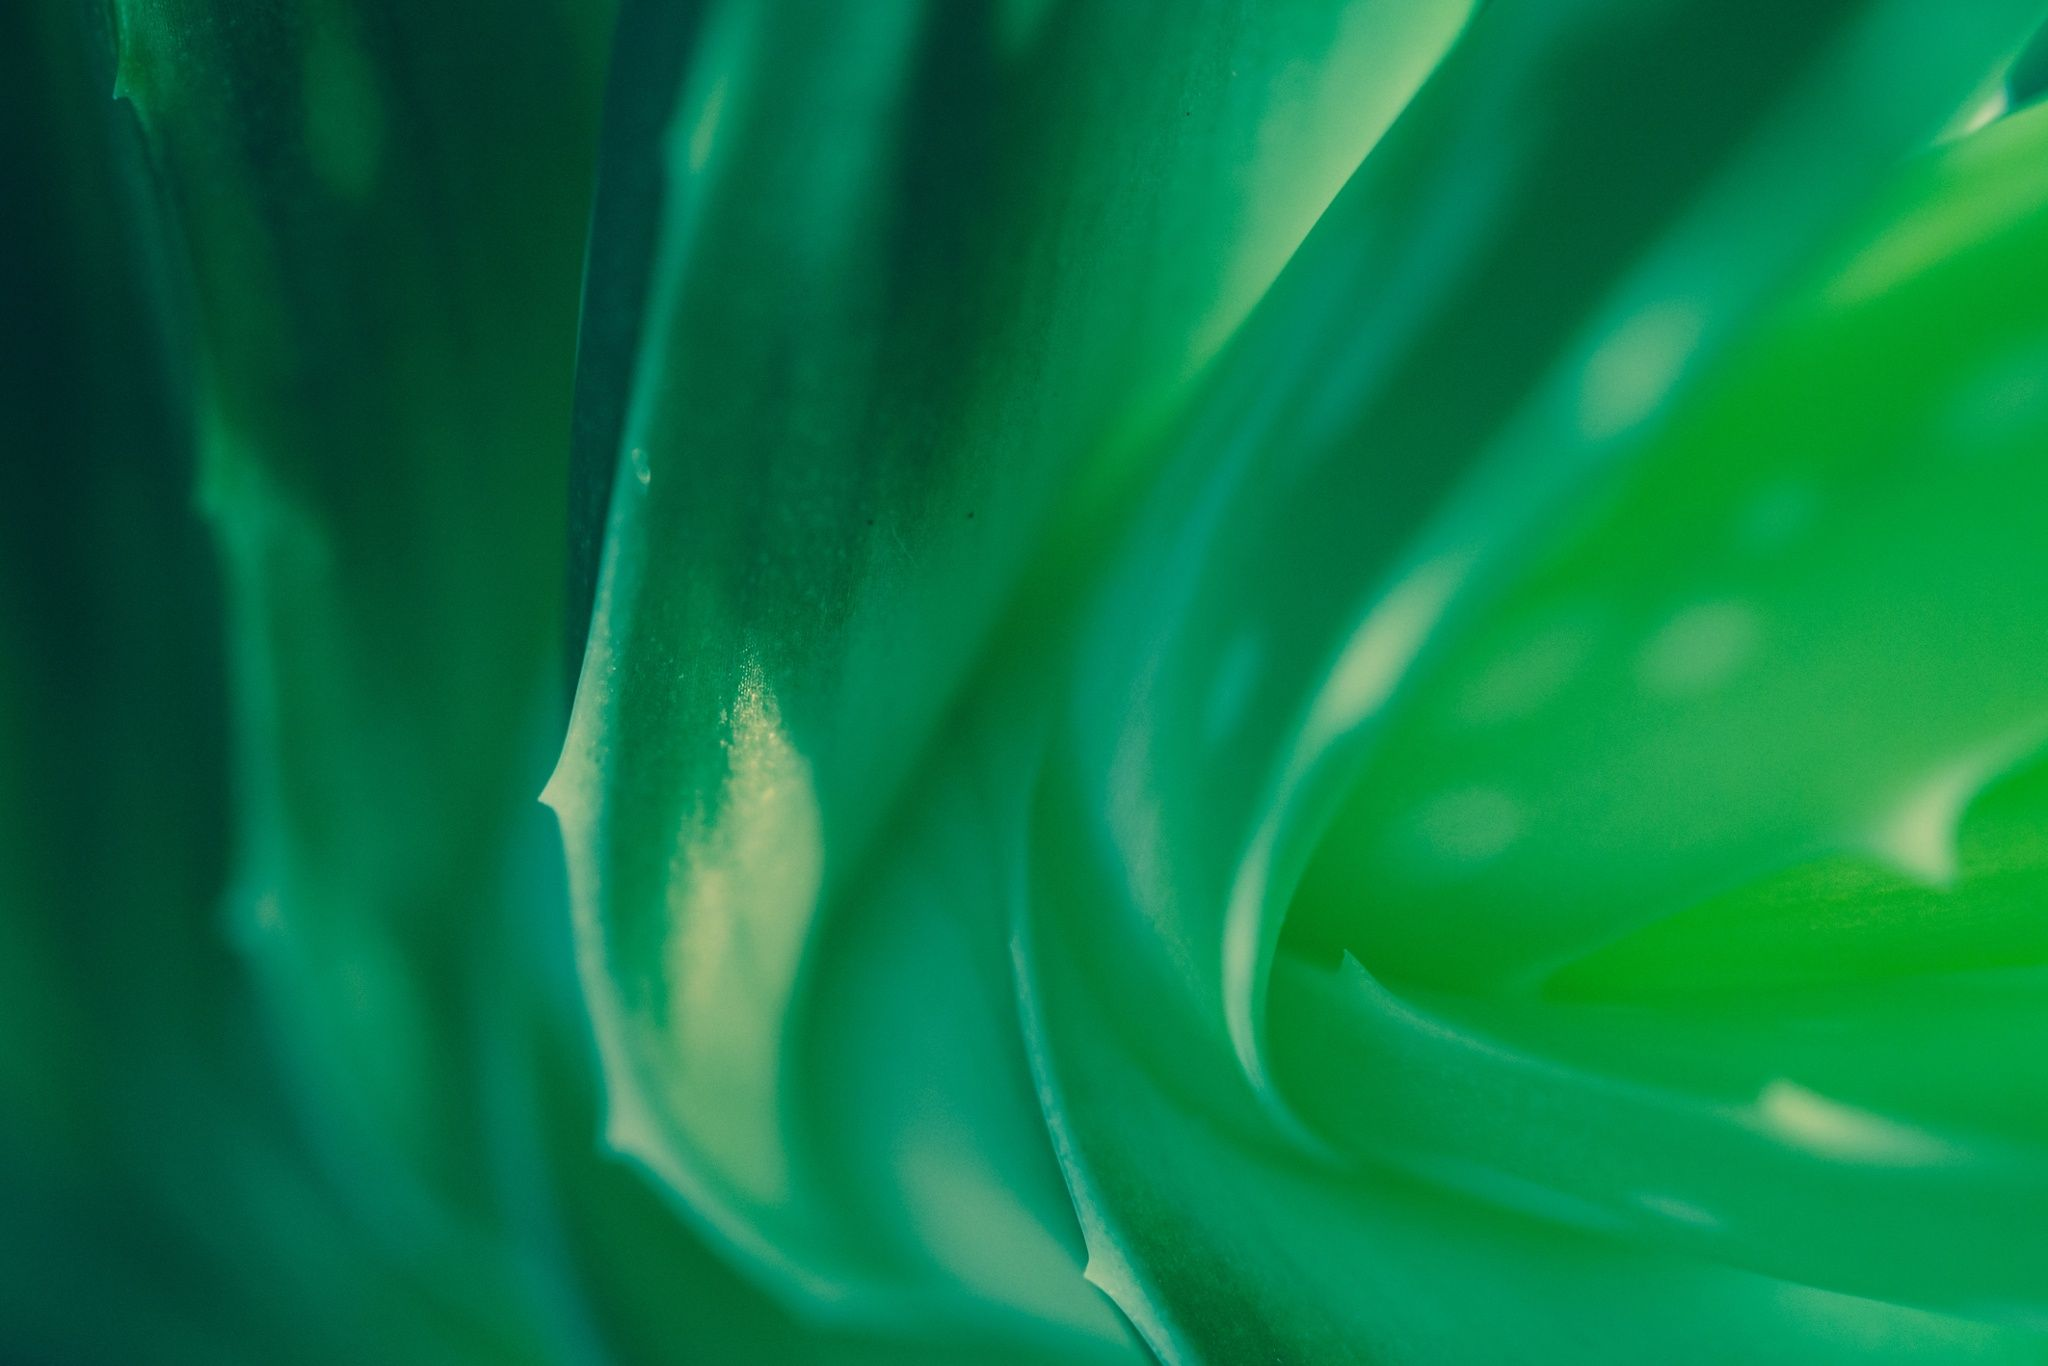 Abstract nature by TheMrGnu on 500px